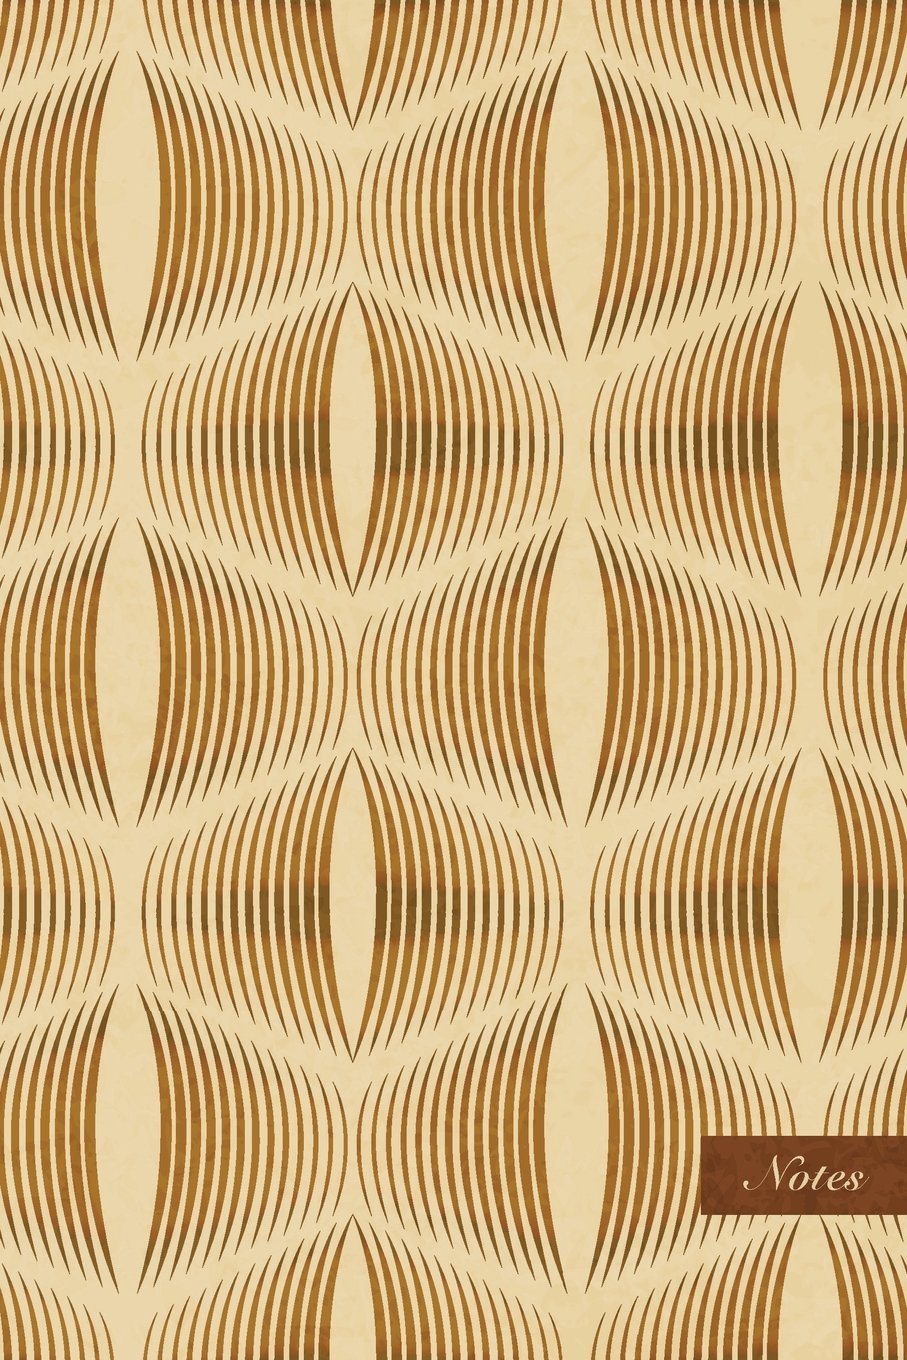 """Notes: 6""""x9"""" Ruled Lined Notebook - Curve Wave Cross Line - Retro Brown Worn Out Vintage Seamless Pattern Cover. Matte Softcover And Cream Interior Papers. pdf epub"""